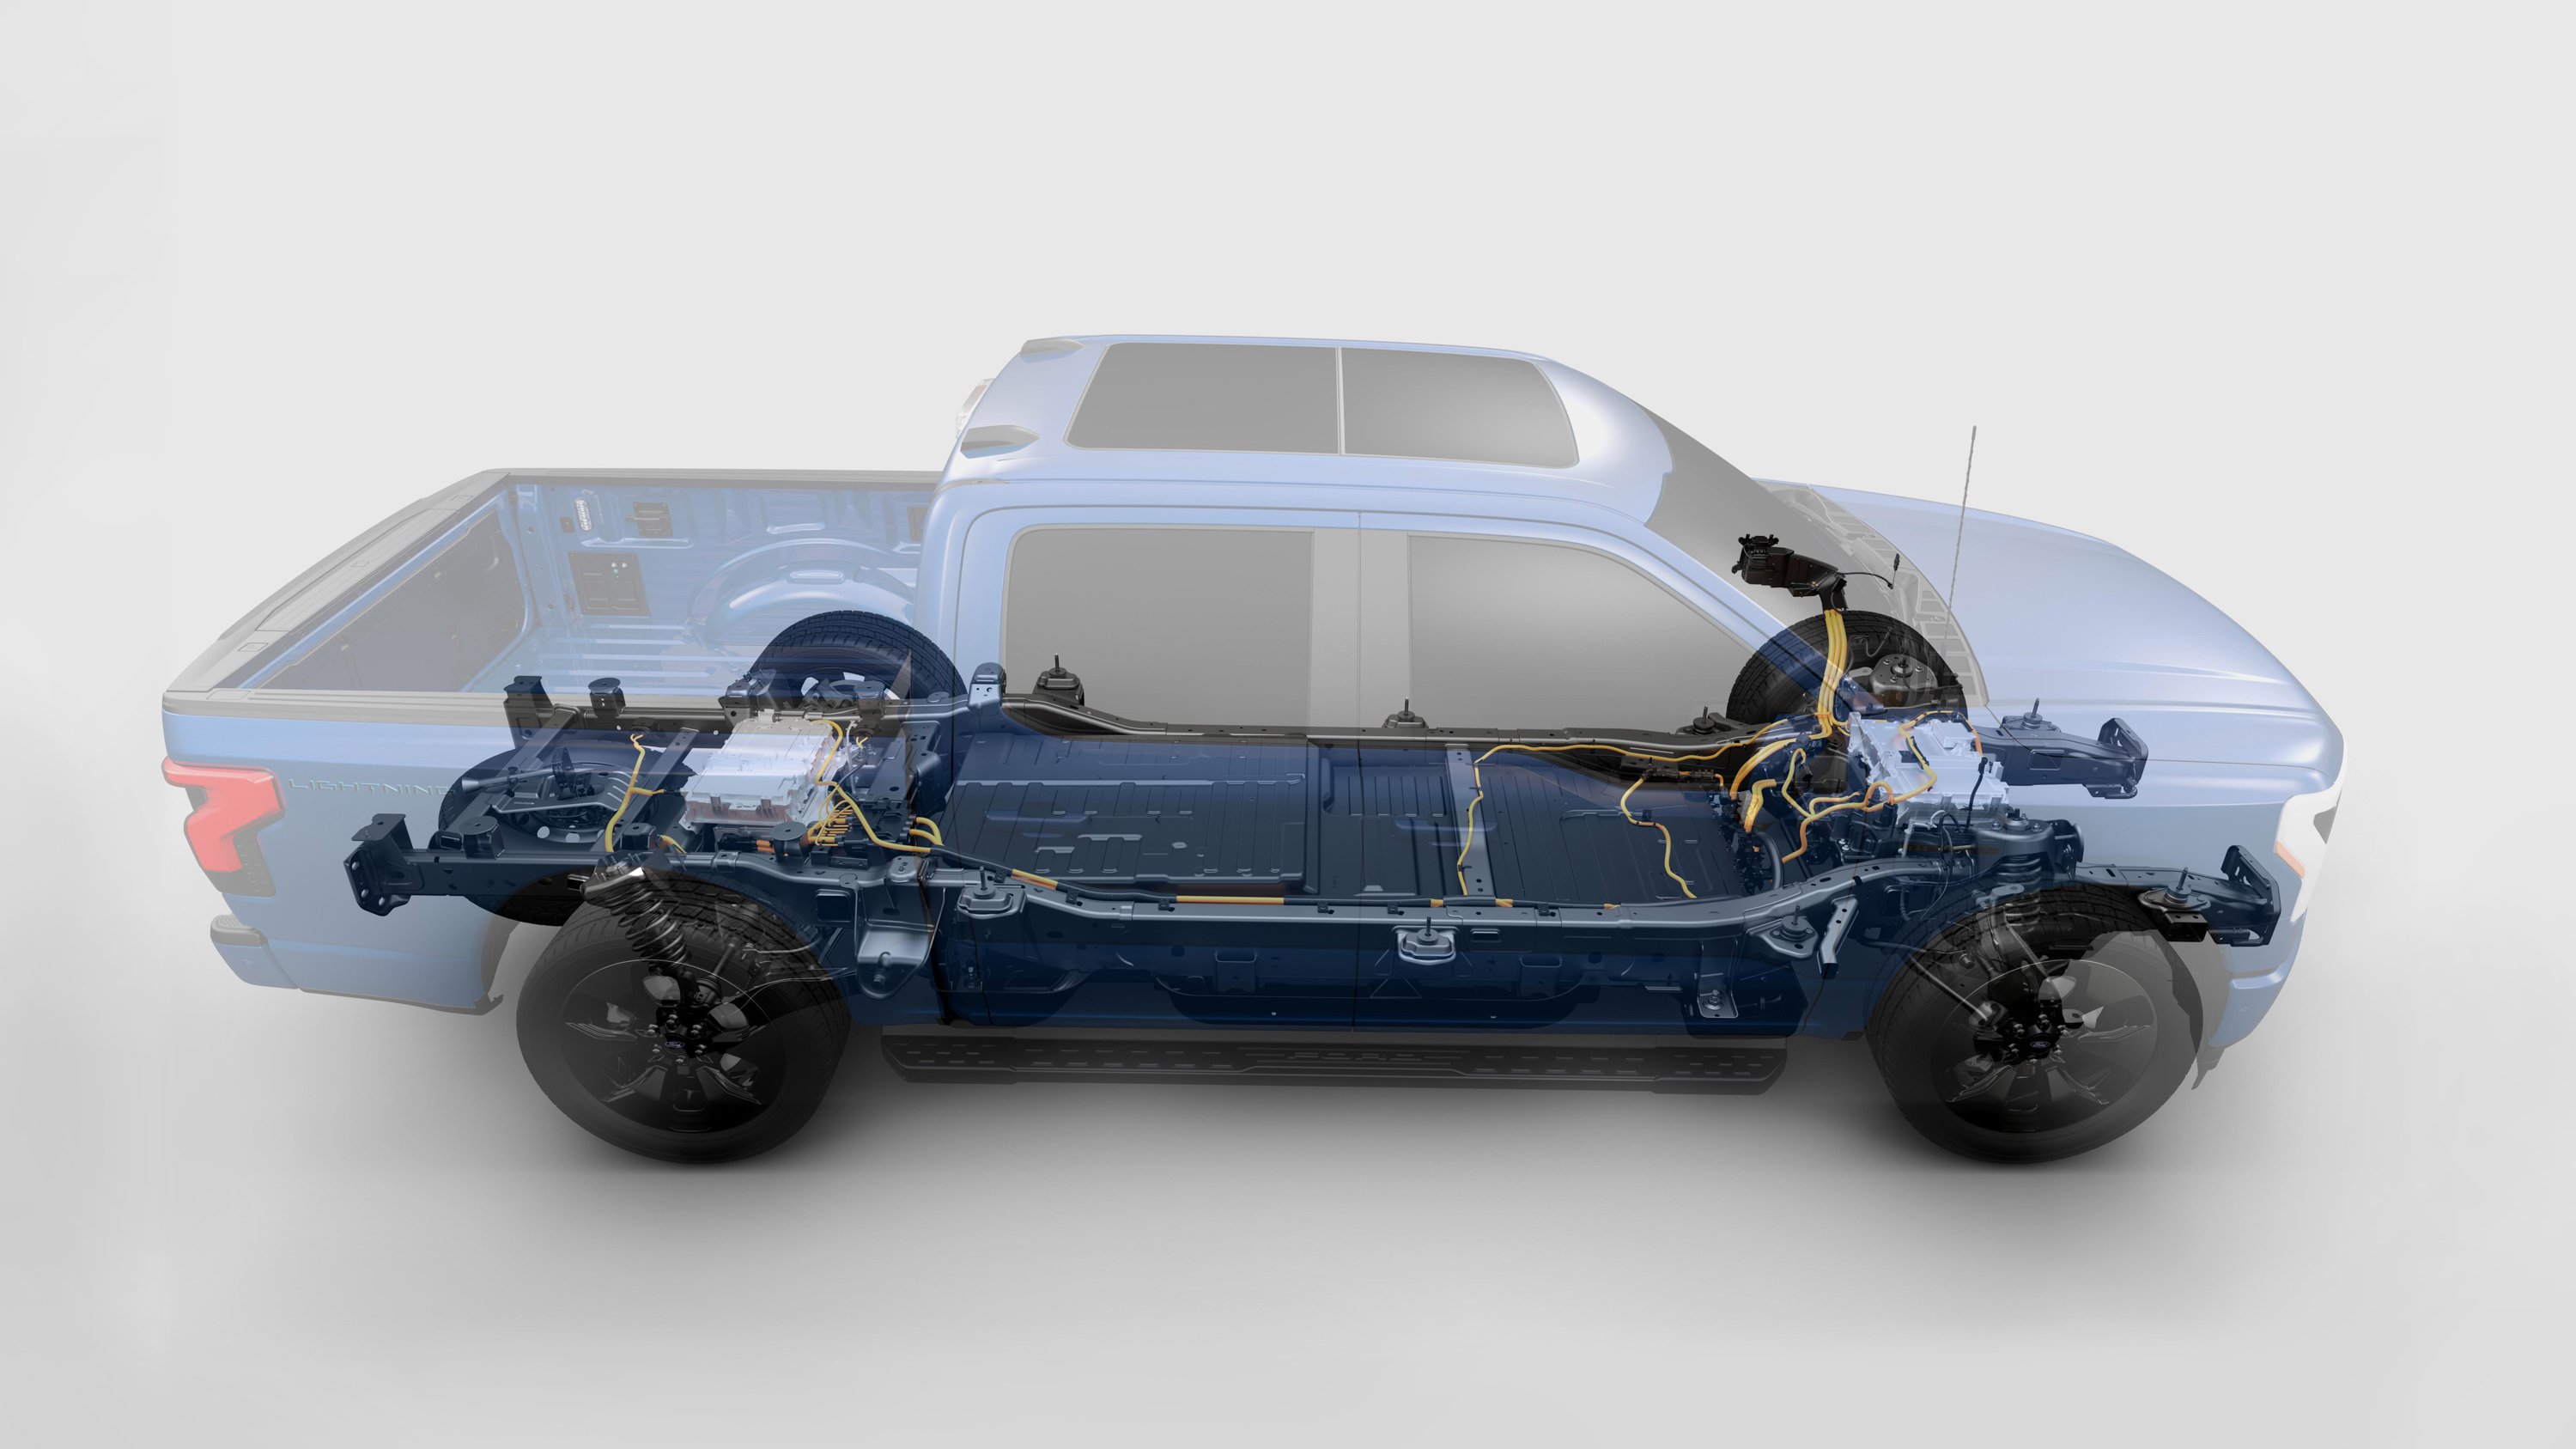 An illustration of the Ford F-150 Lightning powertrain.